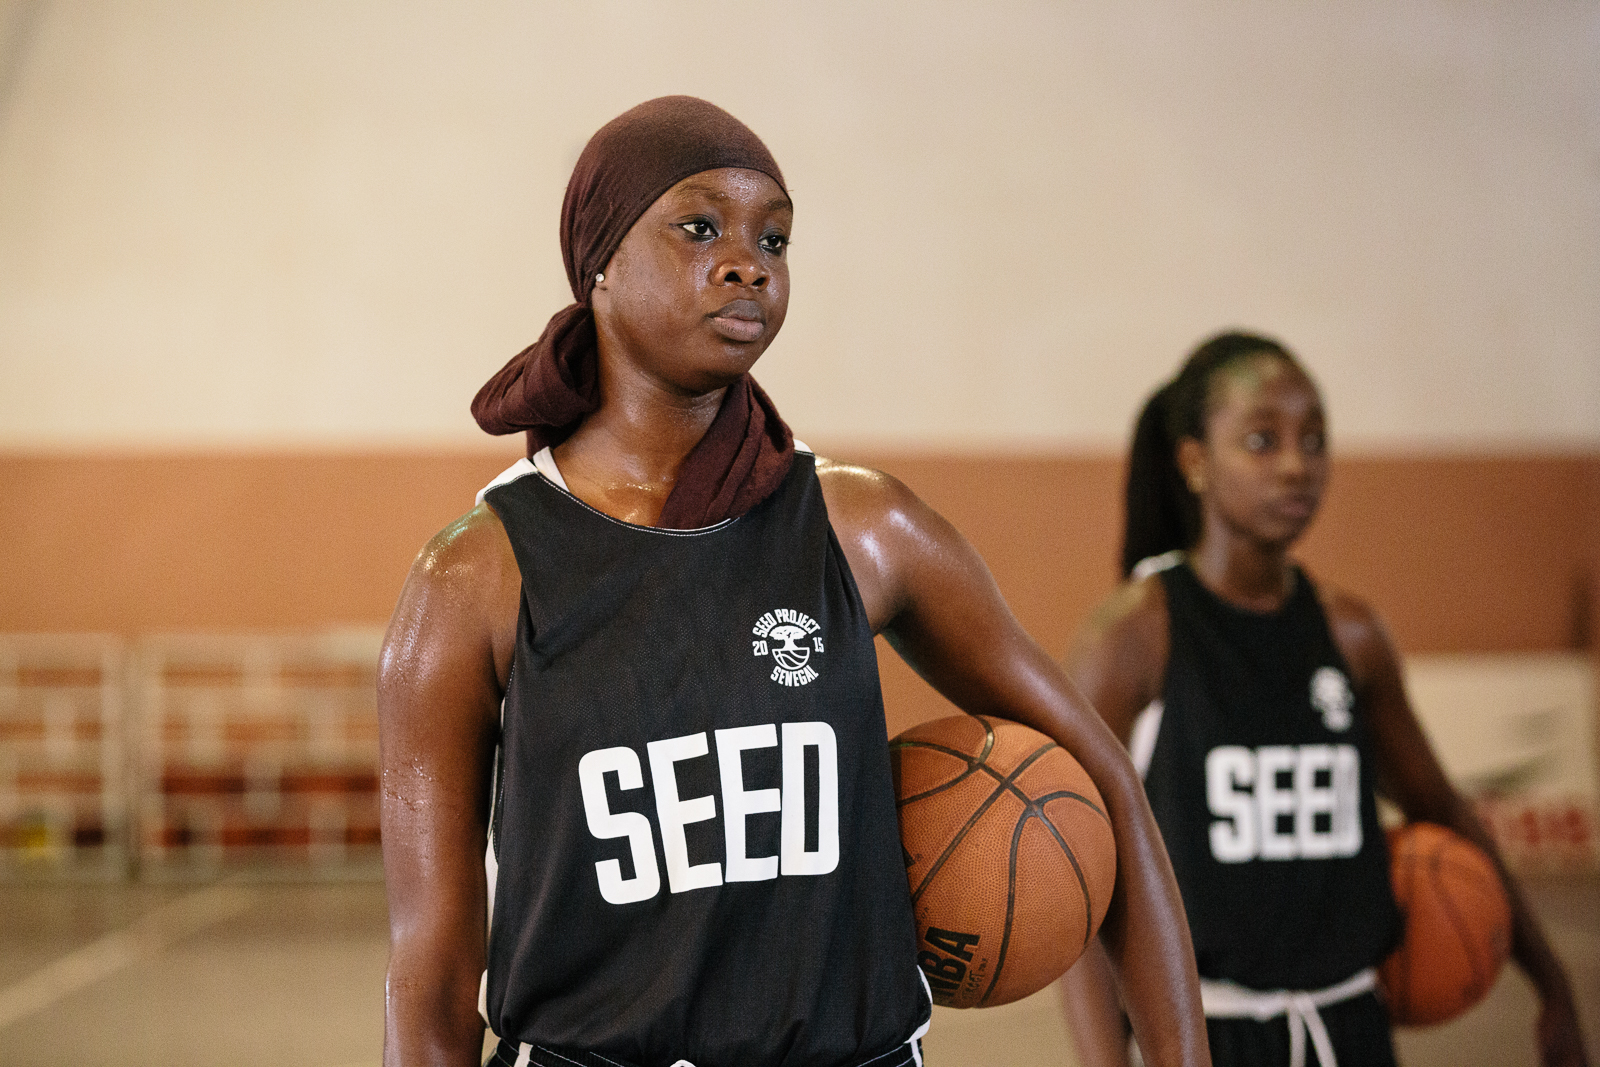 415_20150601_Seed Girls Training_thiès_Senegal©KevinCouliau.jpg